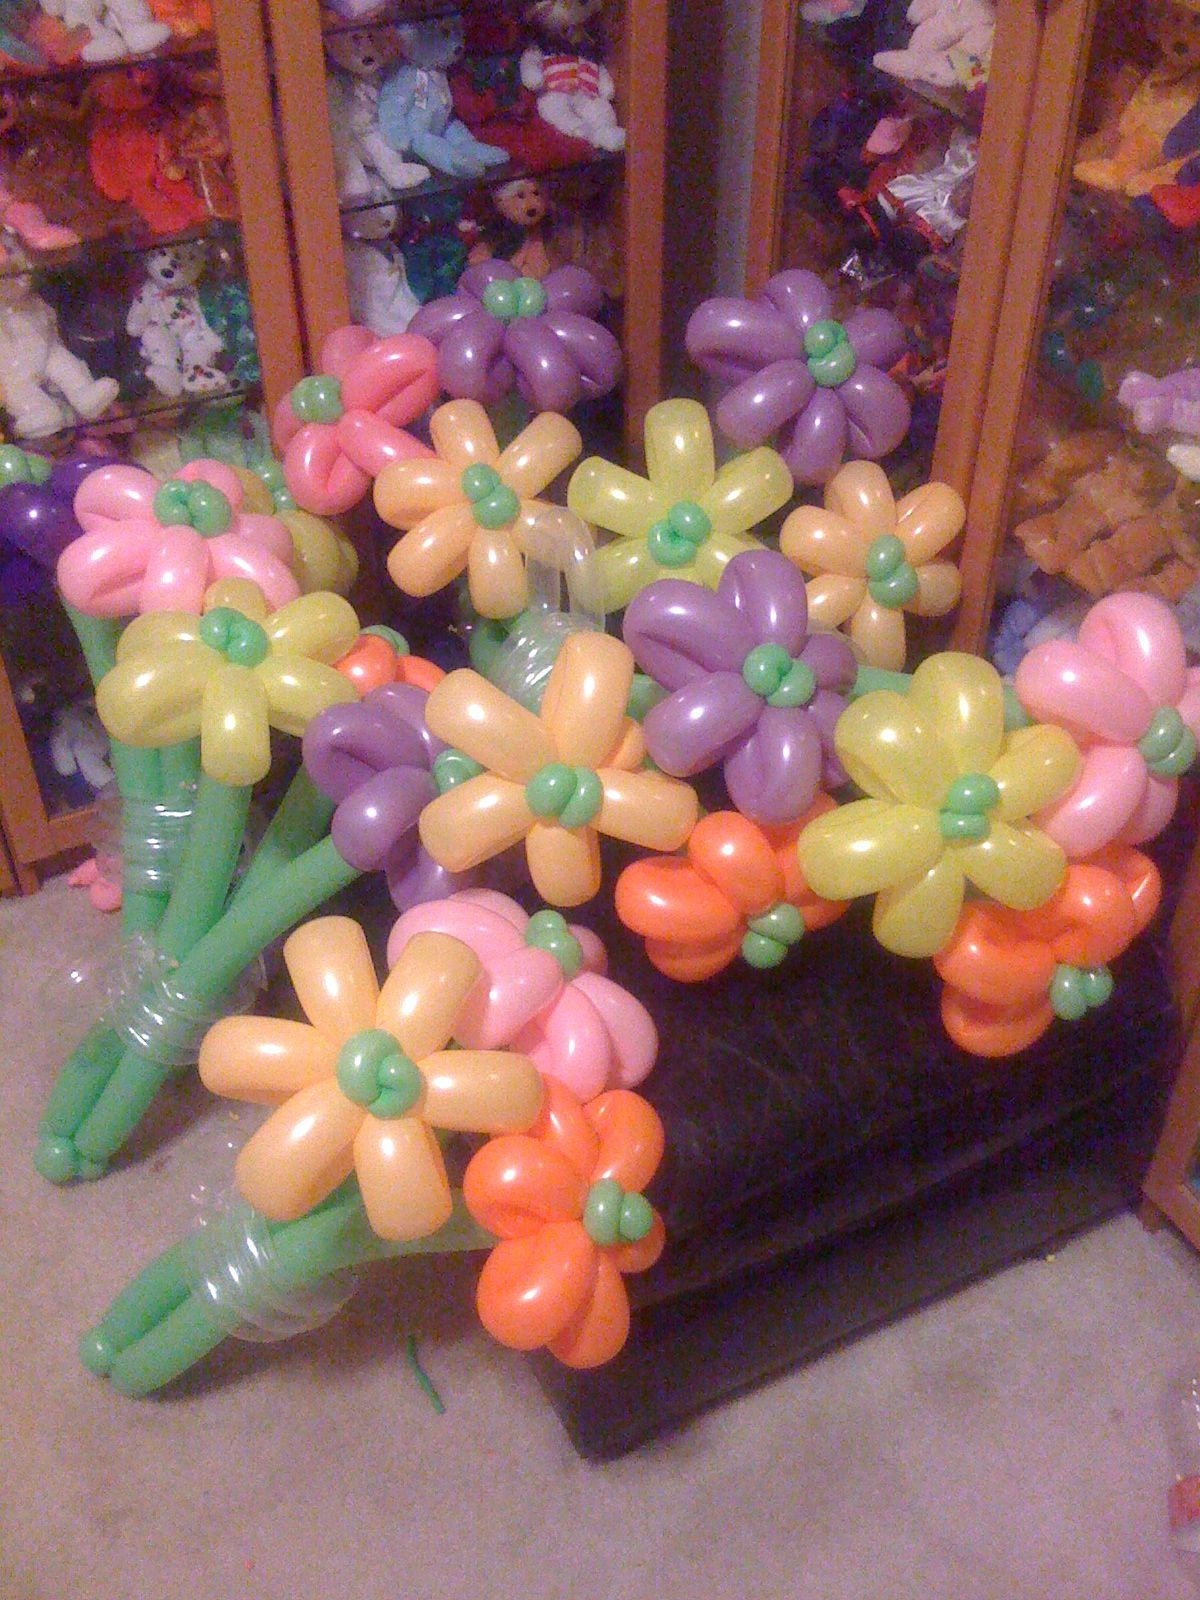 Balloon Flower Bouquets: what fun would this be for the wedding ...